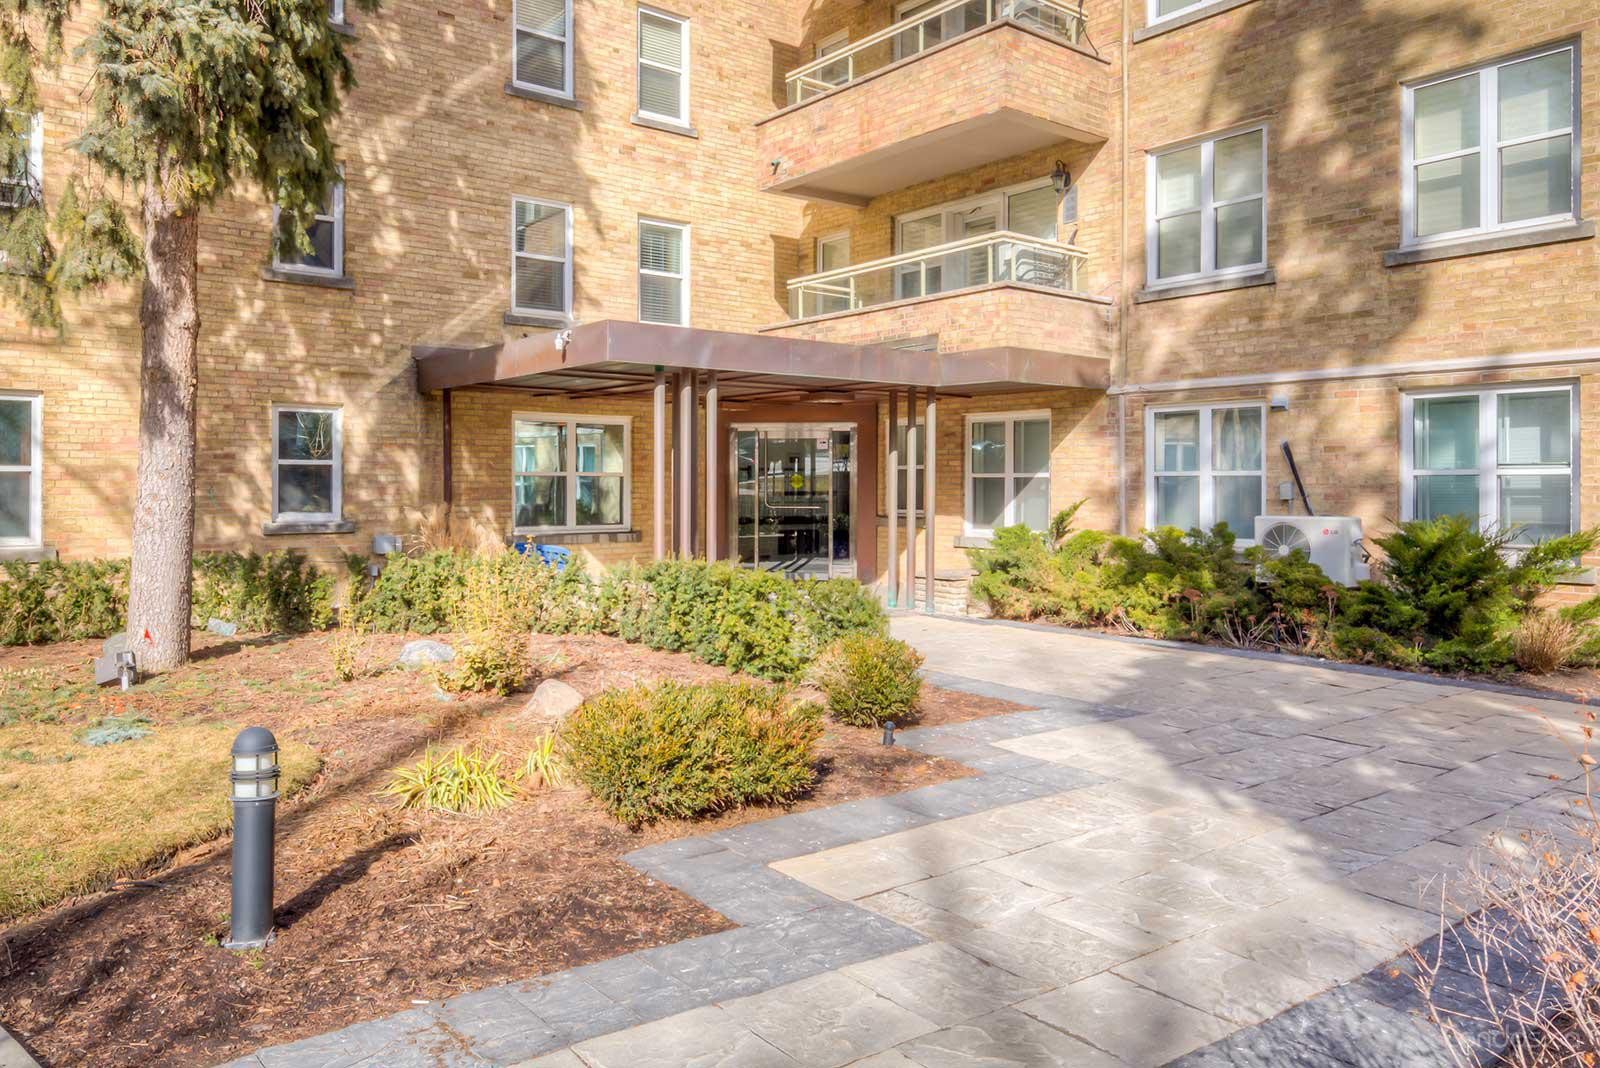 The Courtyards of Upper Forest Hill at 2603 Bathurst St, Toronto 0